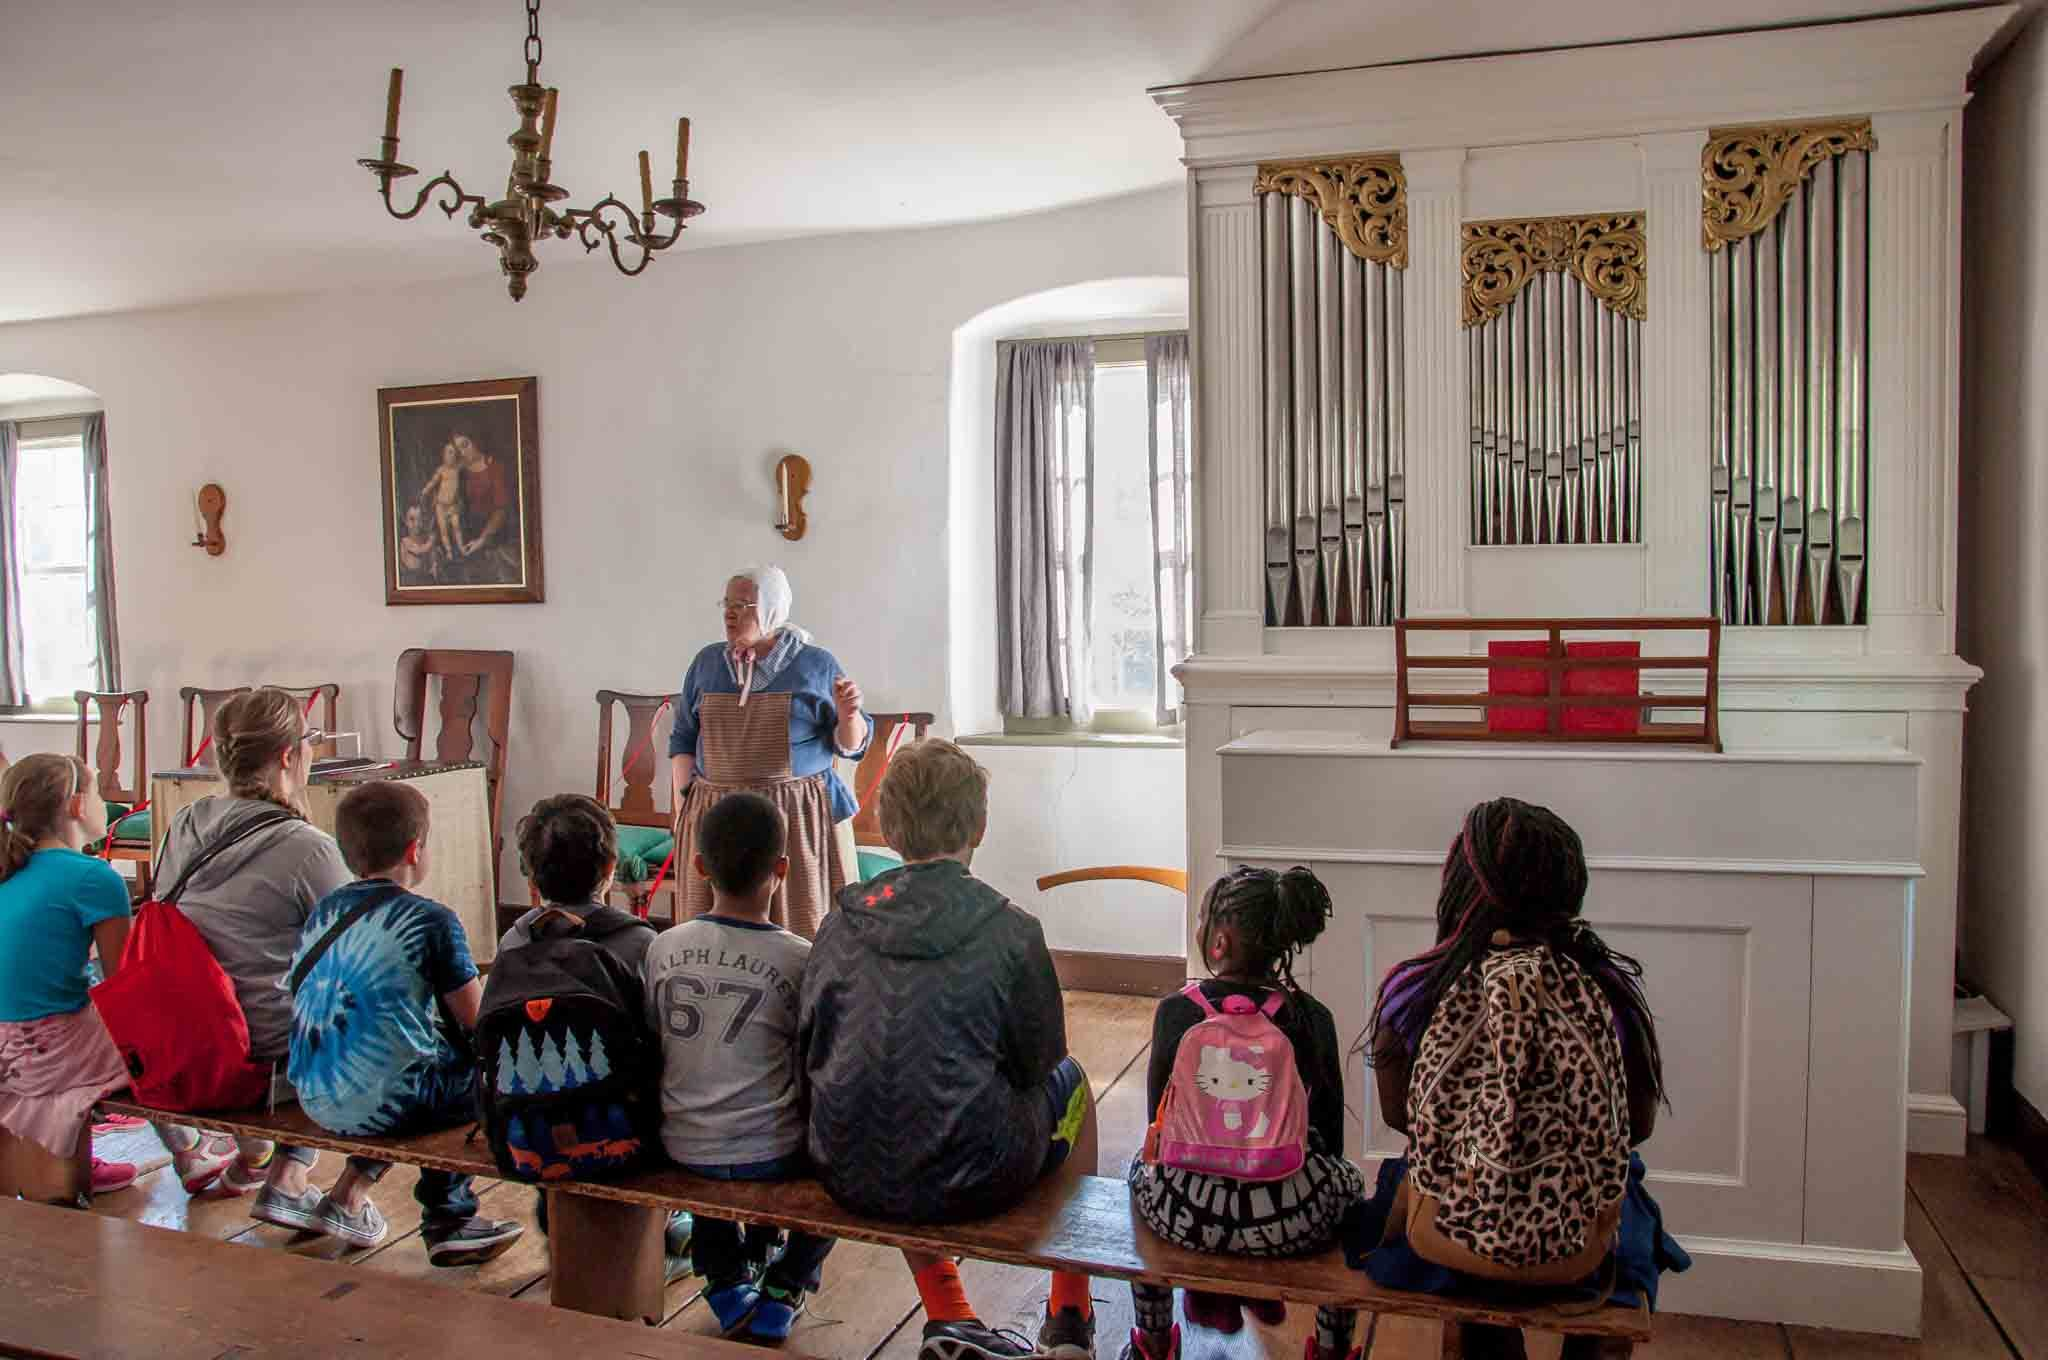 Group of children listening to a lecture in the chapel by an organ